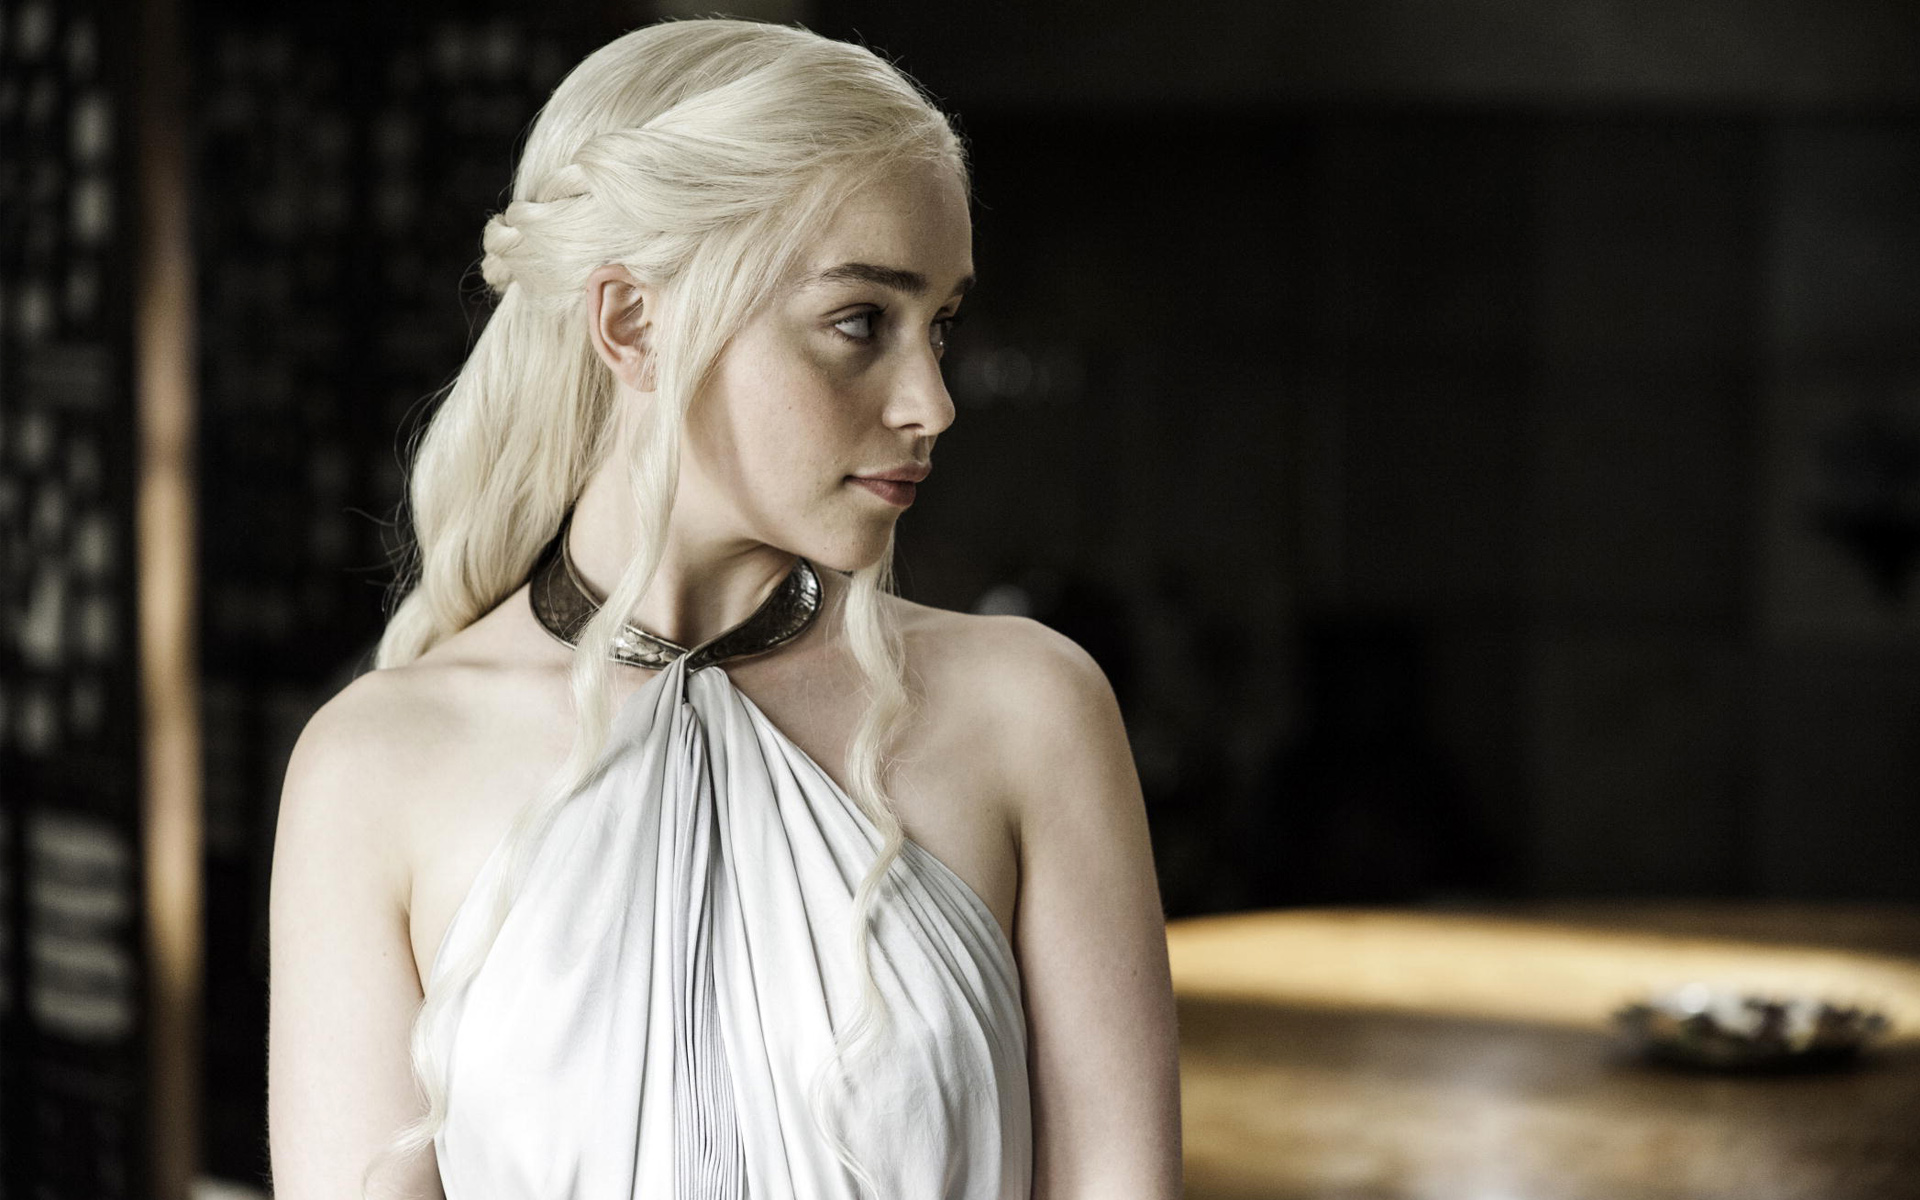 daenerys-targaryen-game-of-thrones-serie-TV